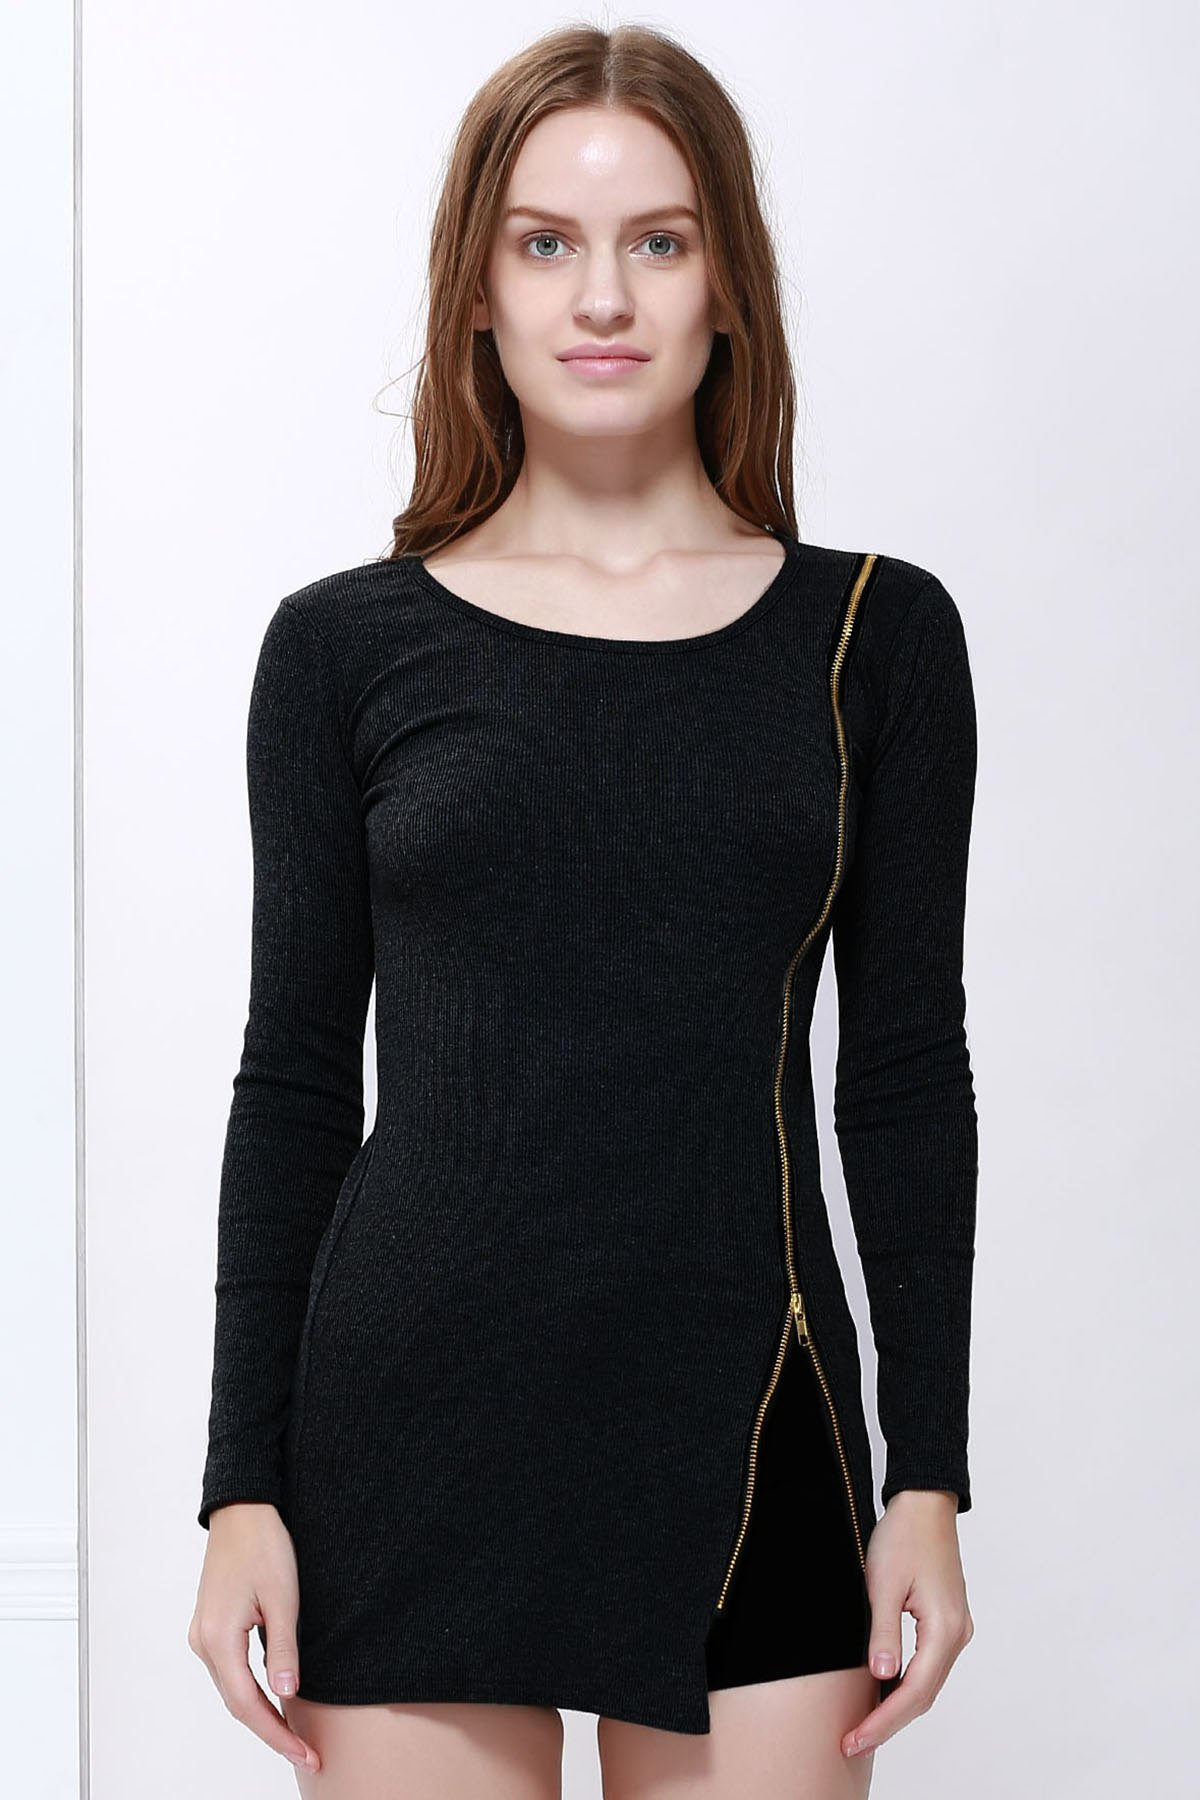 Slimming Zip Embellished Sexy Long Sleeves Dress For Women - BLACK ONE SIZE